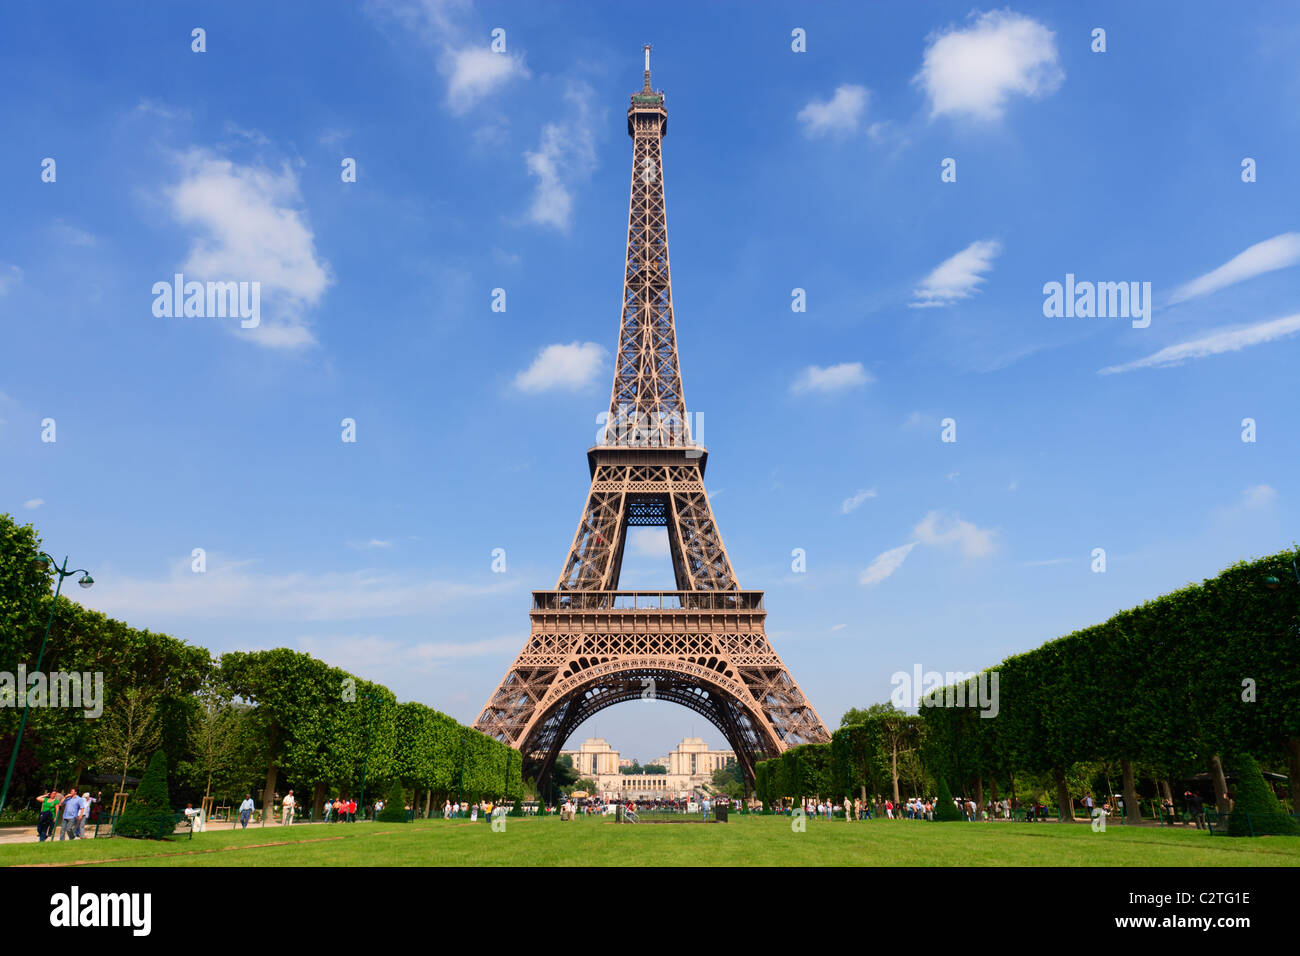 The Eiffel Tower from the Champ de Mars. - Stock Image